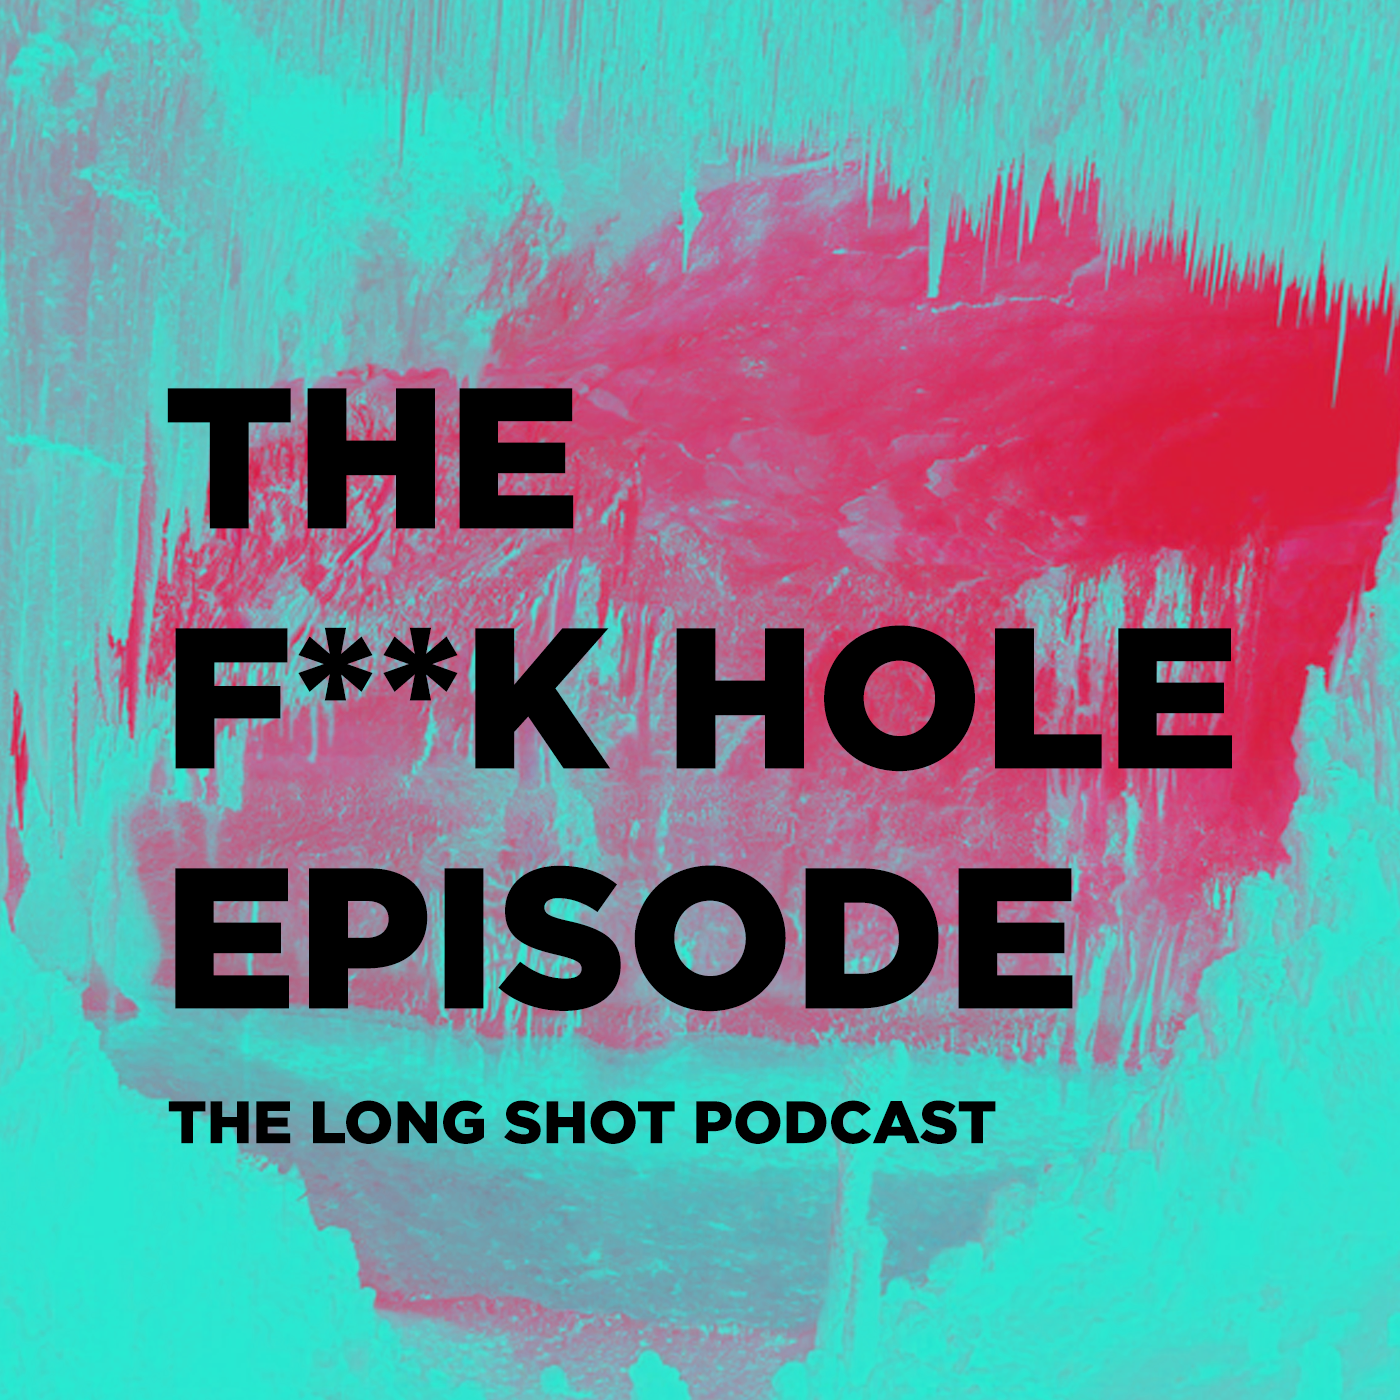 Episode #1017: The F**k Hole Episode featuring Brandie Posey